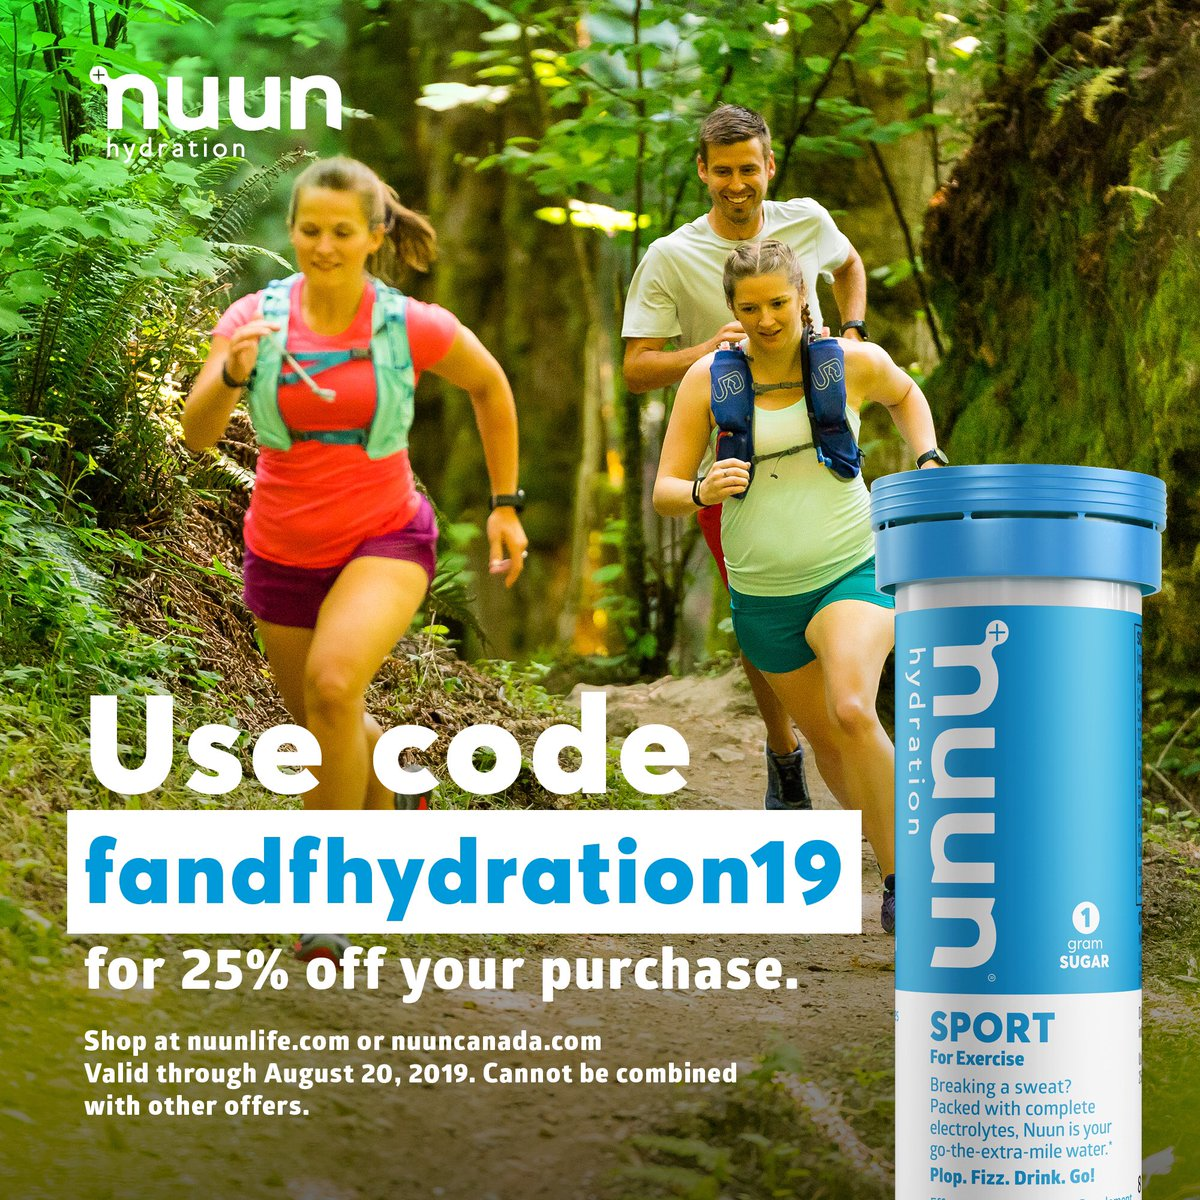 Drink up, because 100 degree days are here to get you! #nuunlife #nuunlove #nuunhydration<br>http://pic.twitter.com/UebzsEFoLa